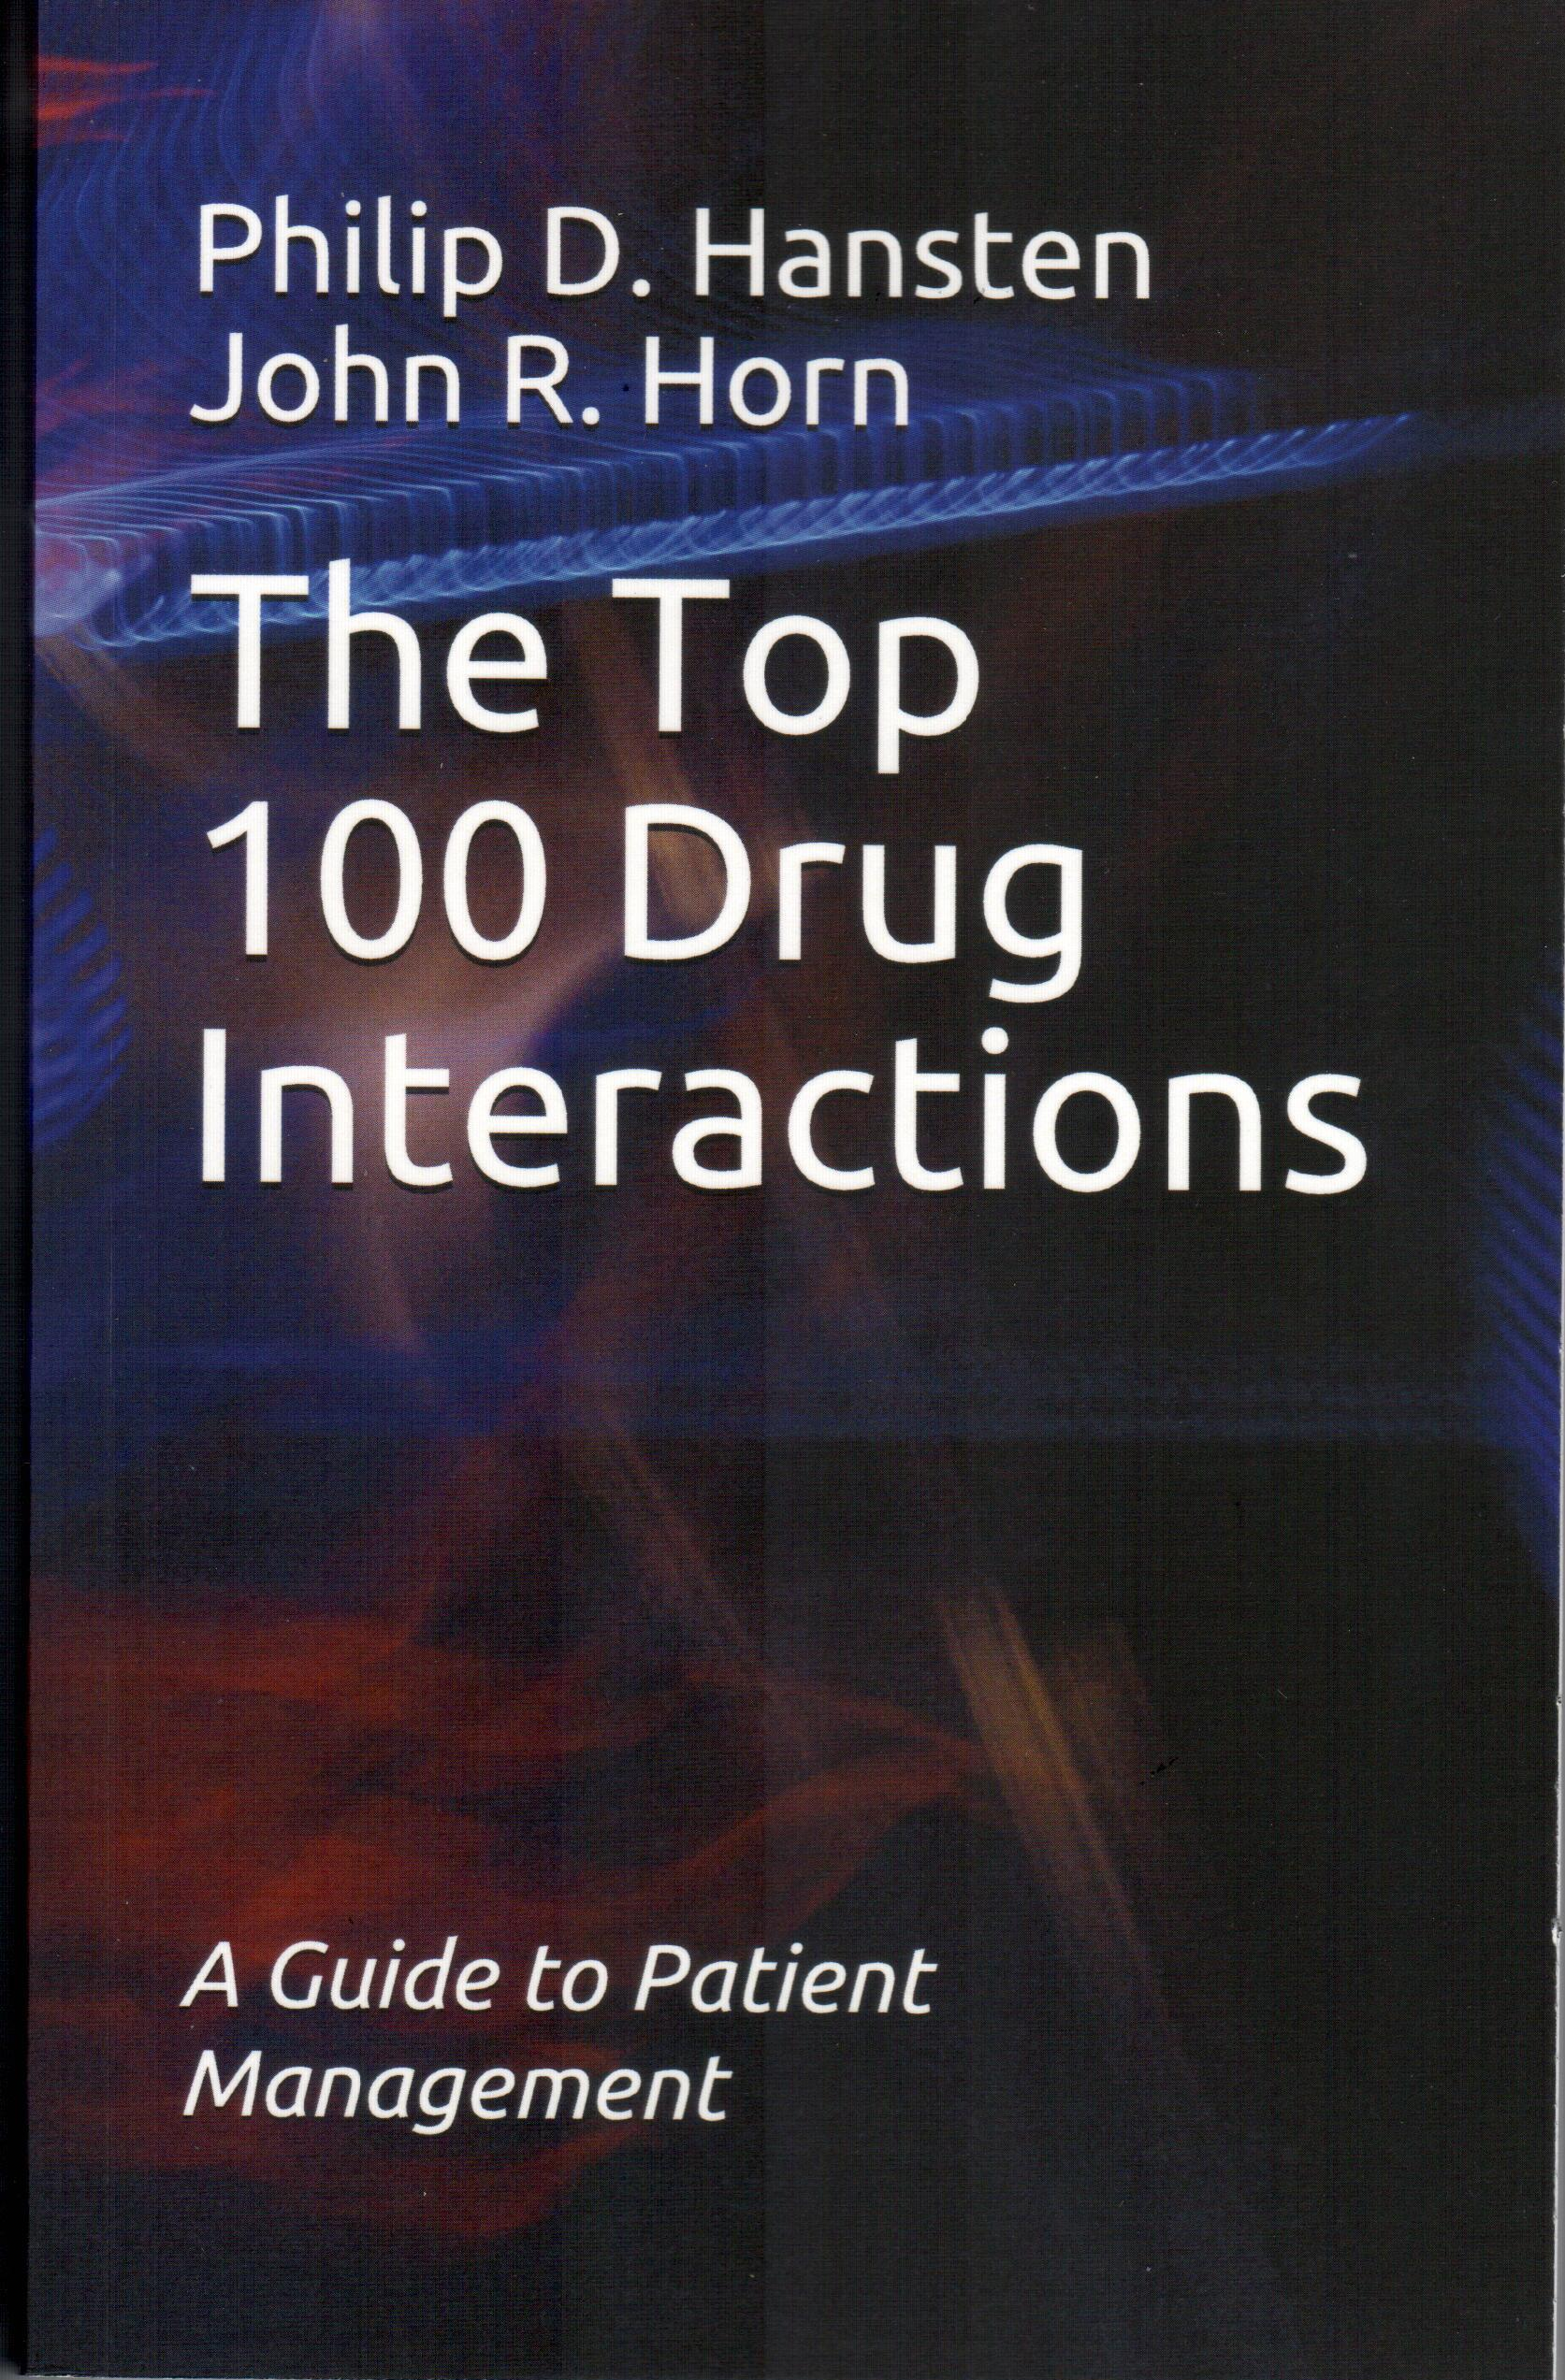 Top 100 Drug Interactions cover image